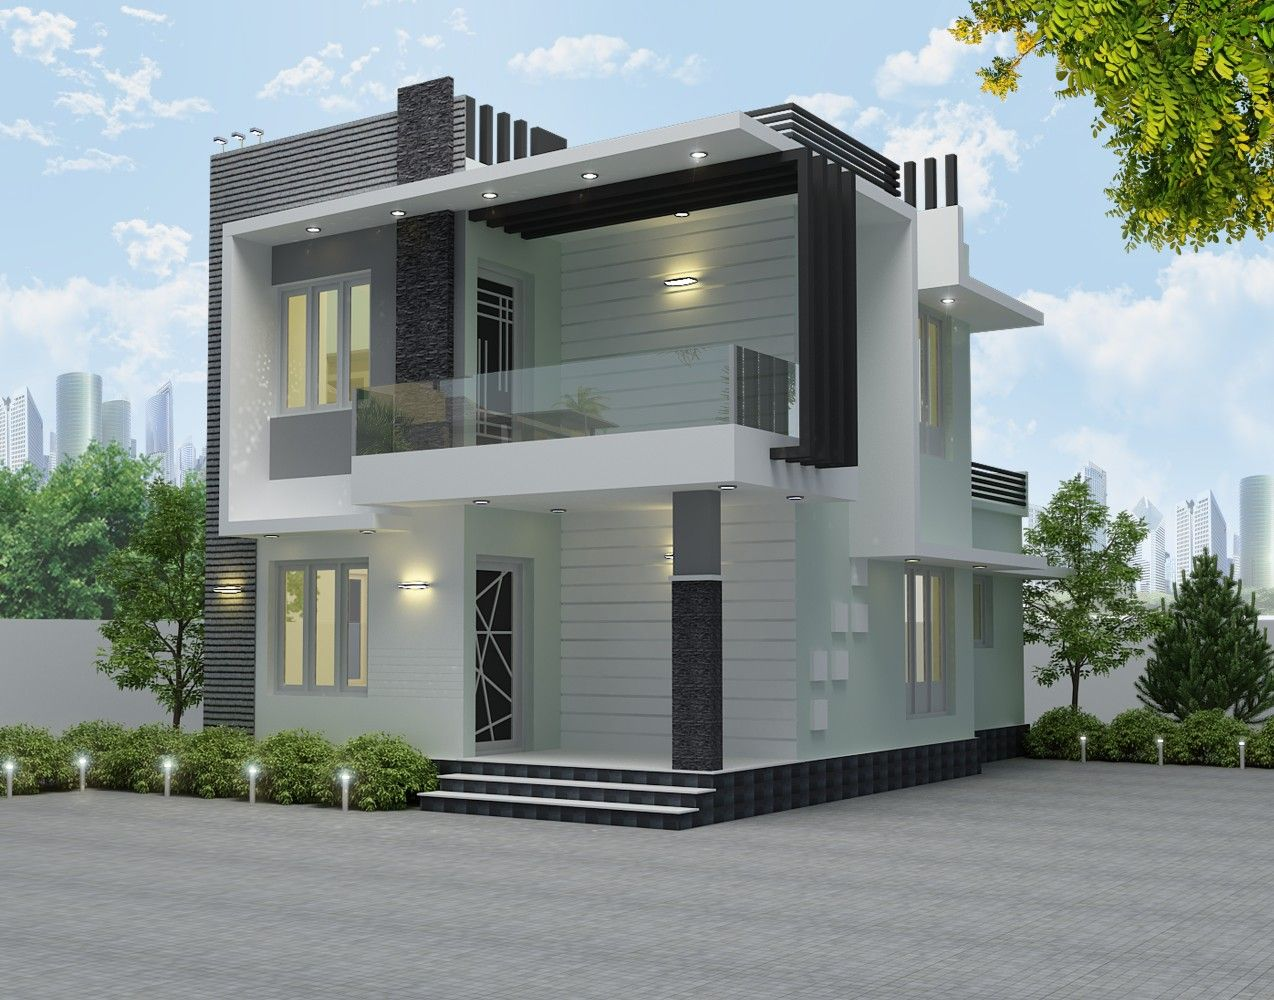 Milda S Home Duplex House Design House Front Design Small House Elevation Design